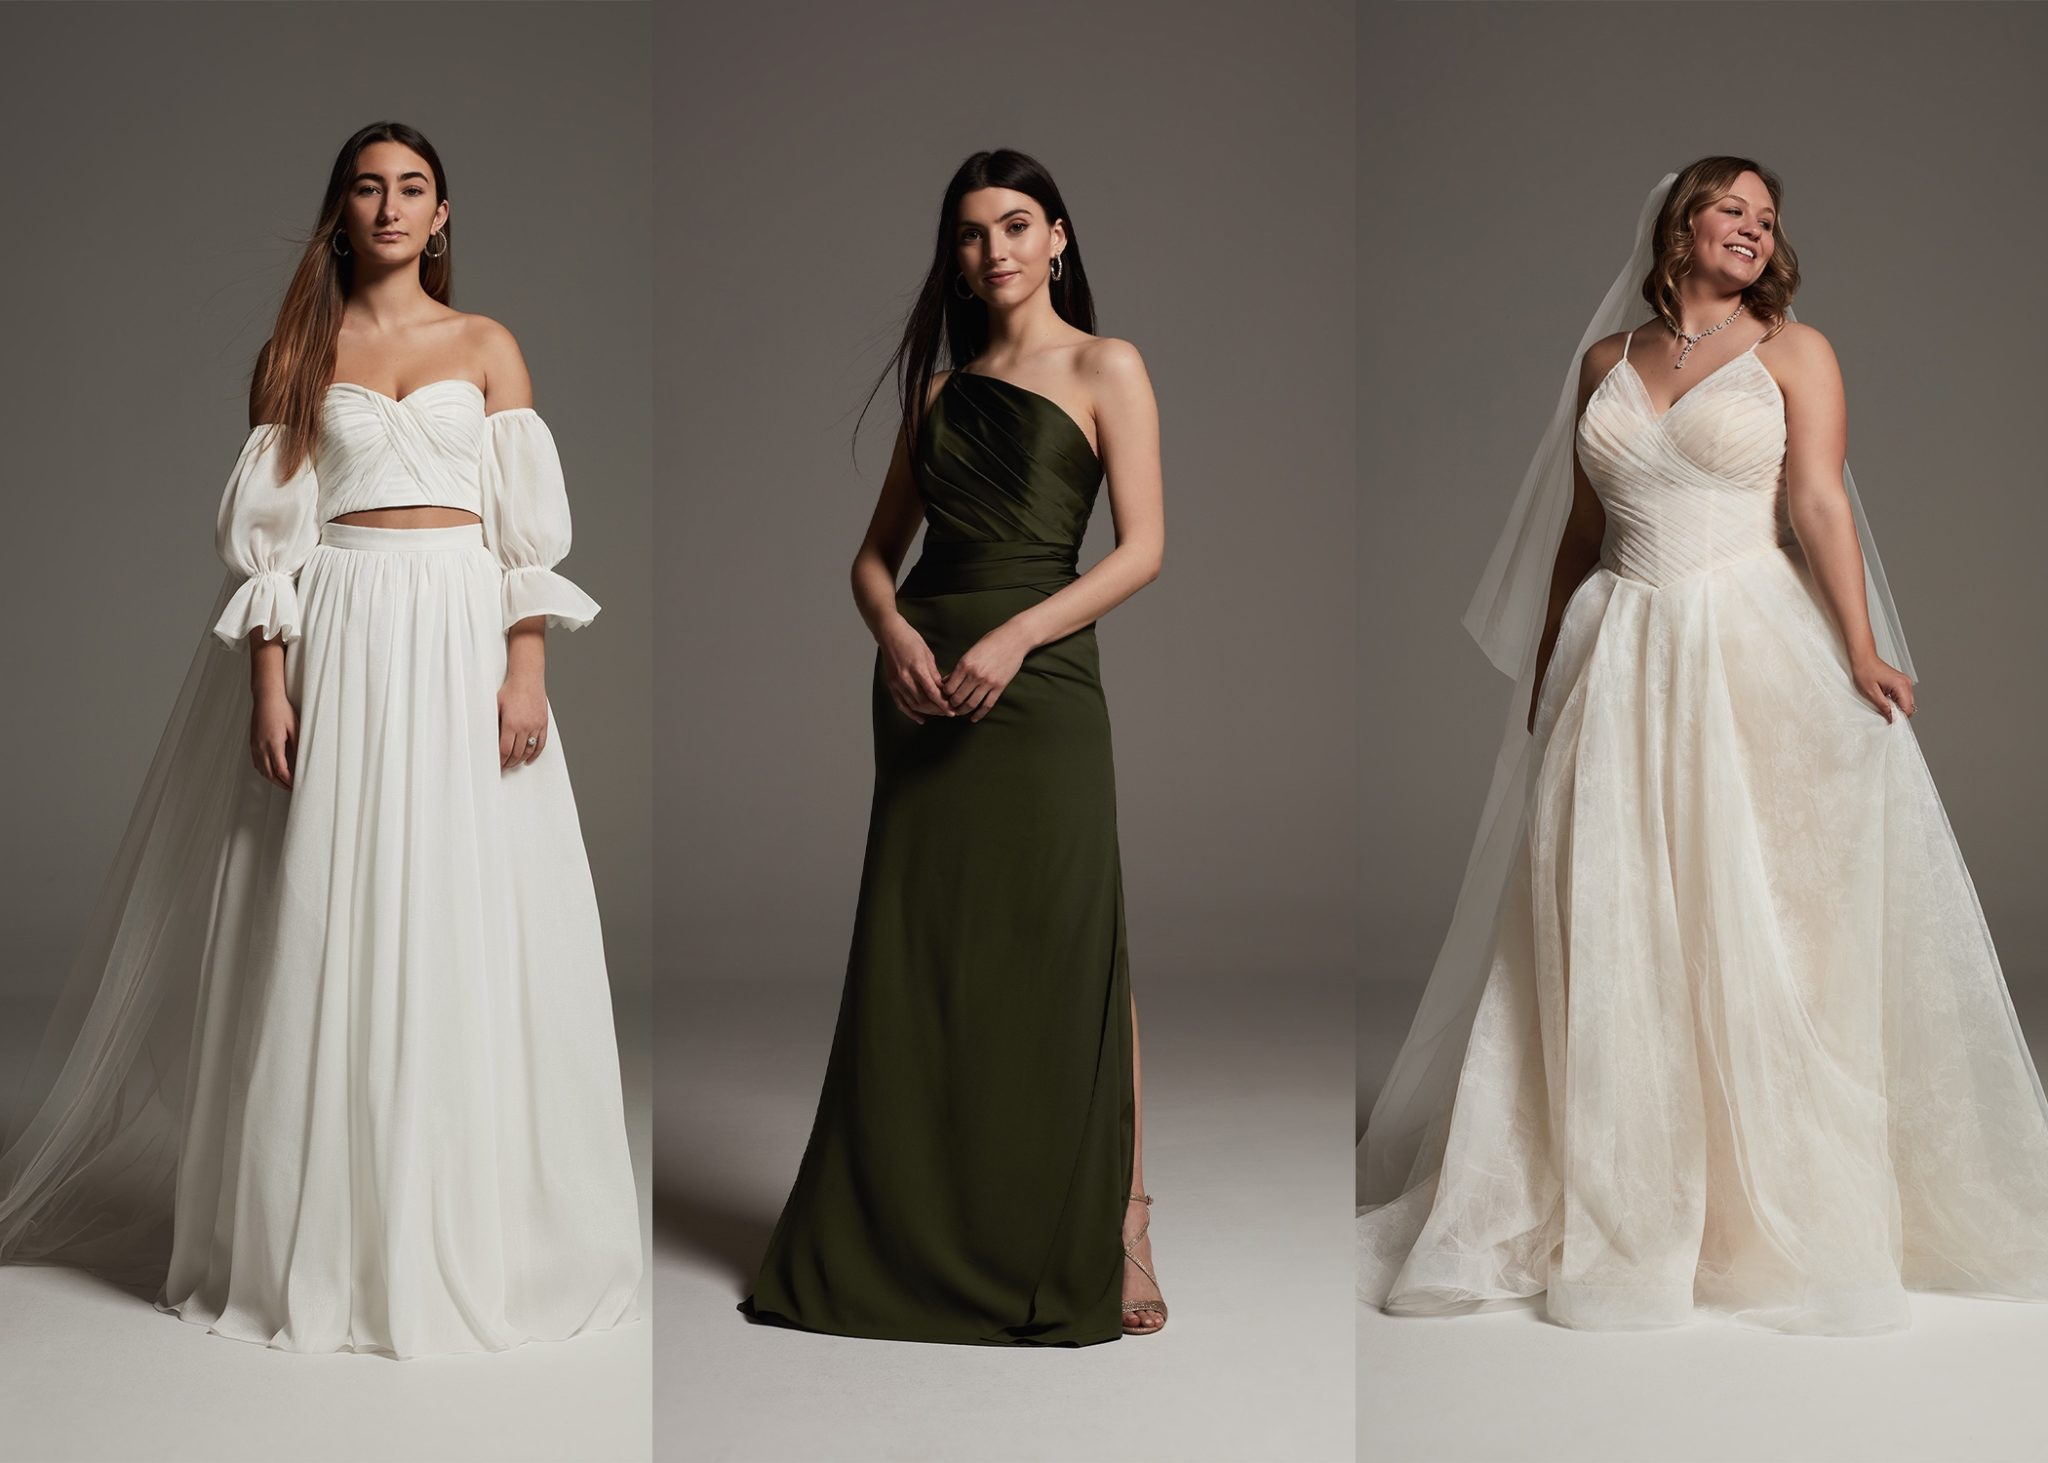 WHITE by Vera Wang bridal gown and bridesmaid dresses